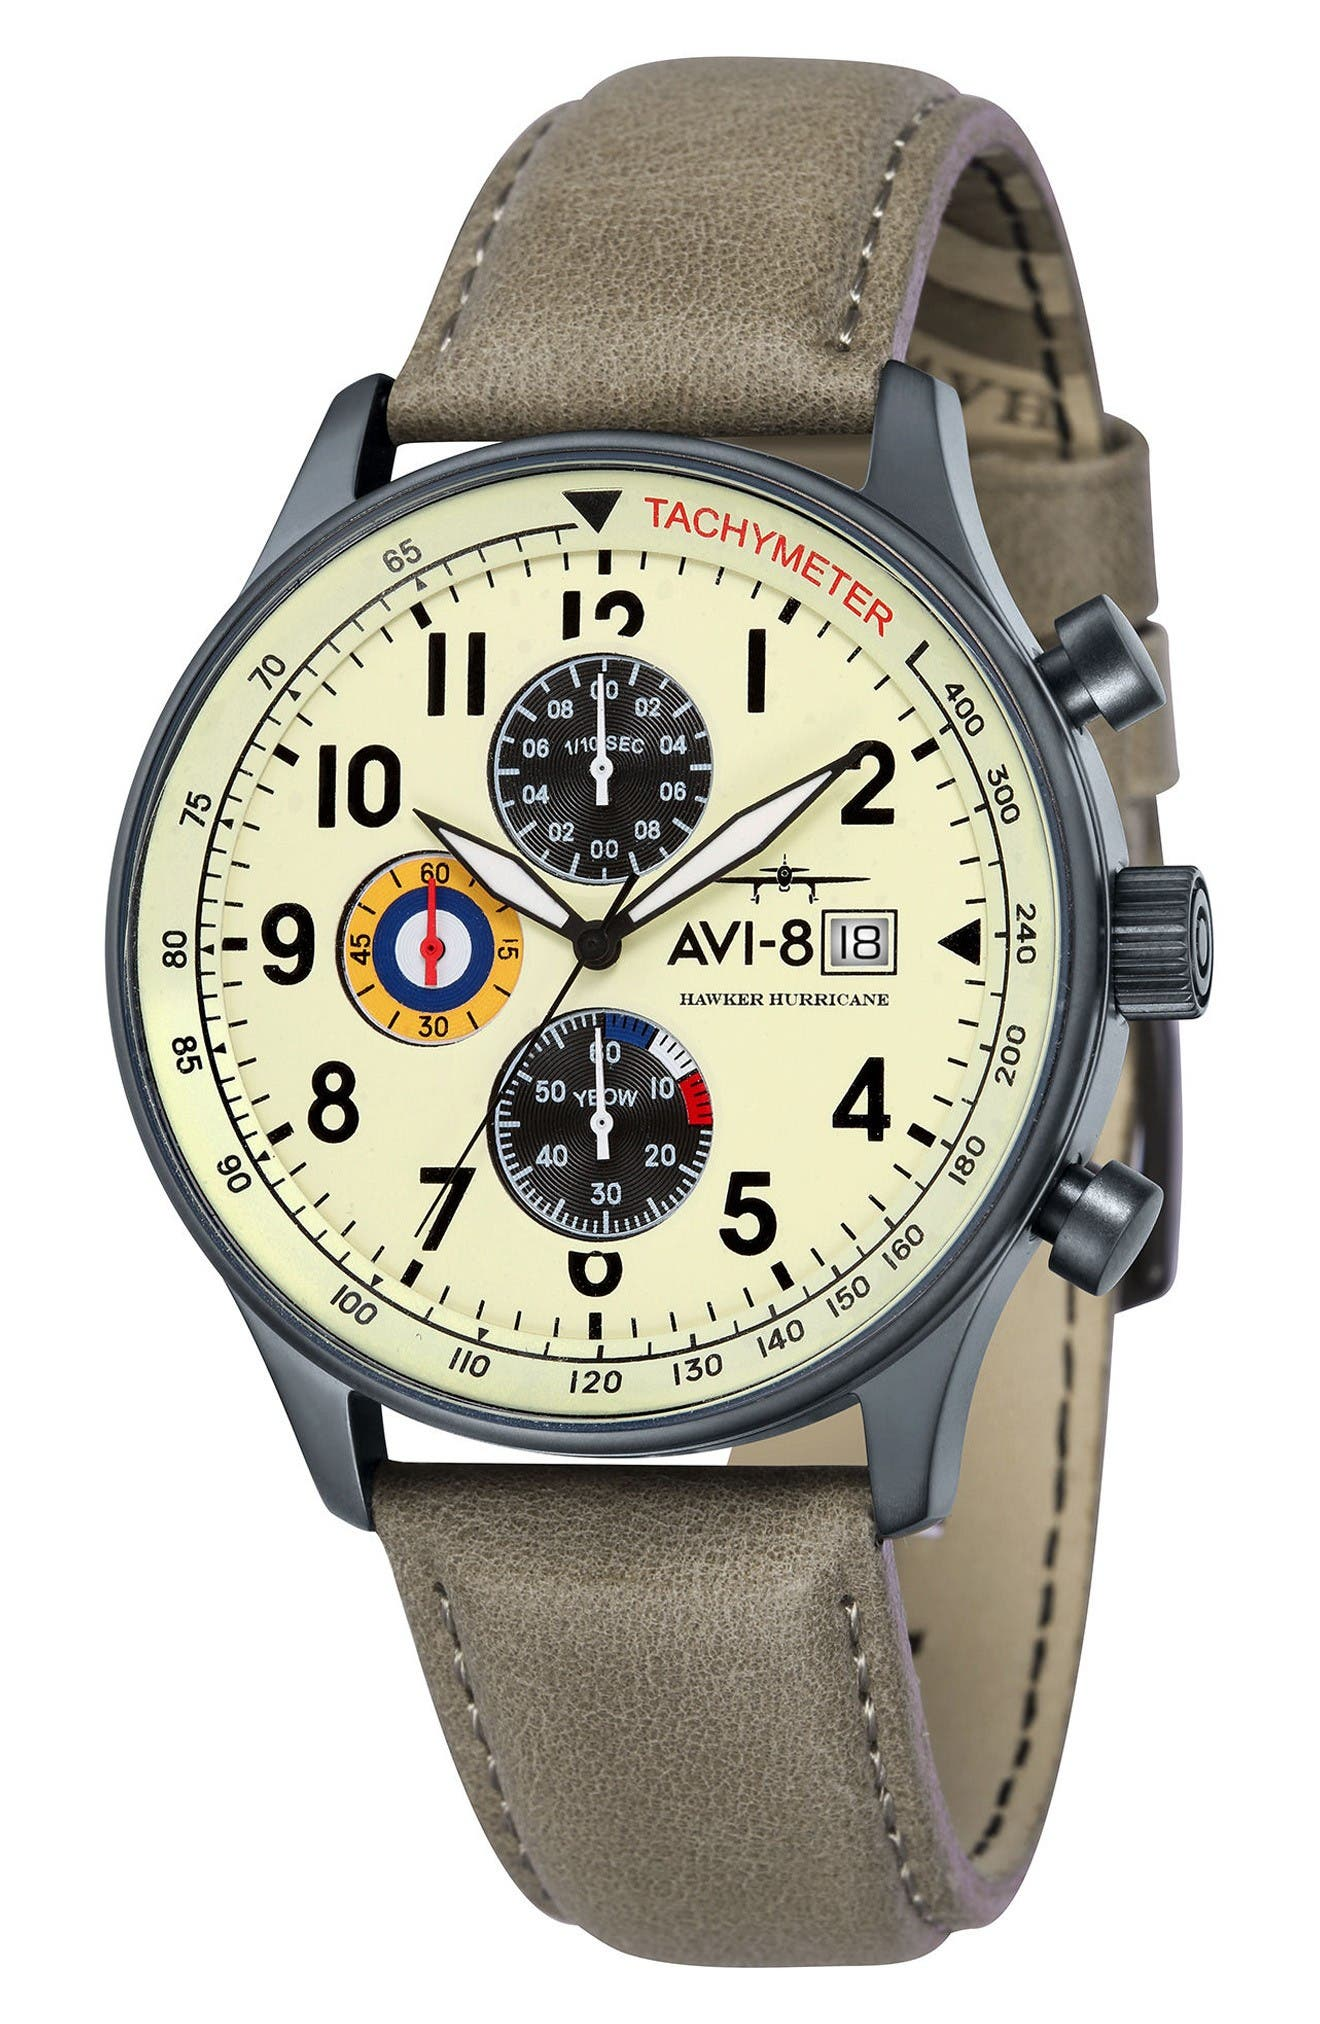 Main Image - AVI-8 Hawker Hurricane Chronograph Leather Strap Watch, 42mm